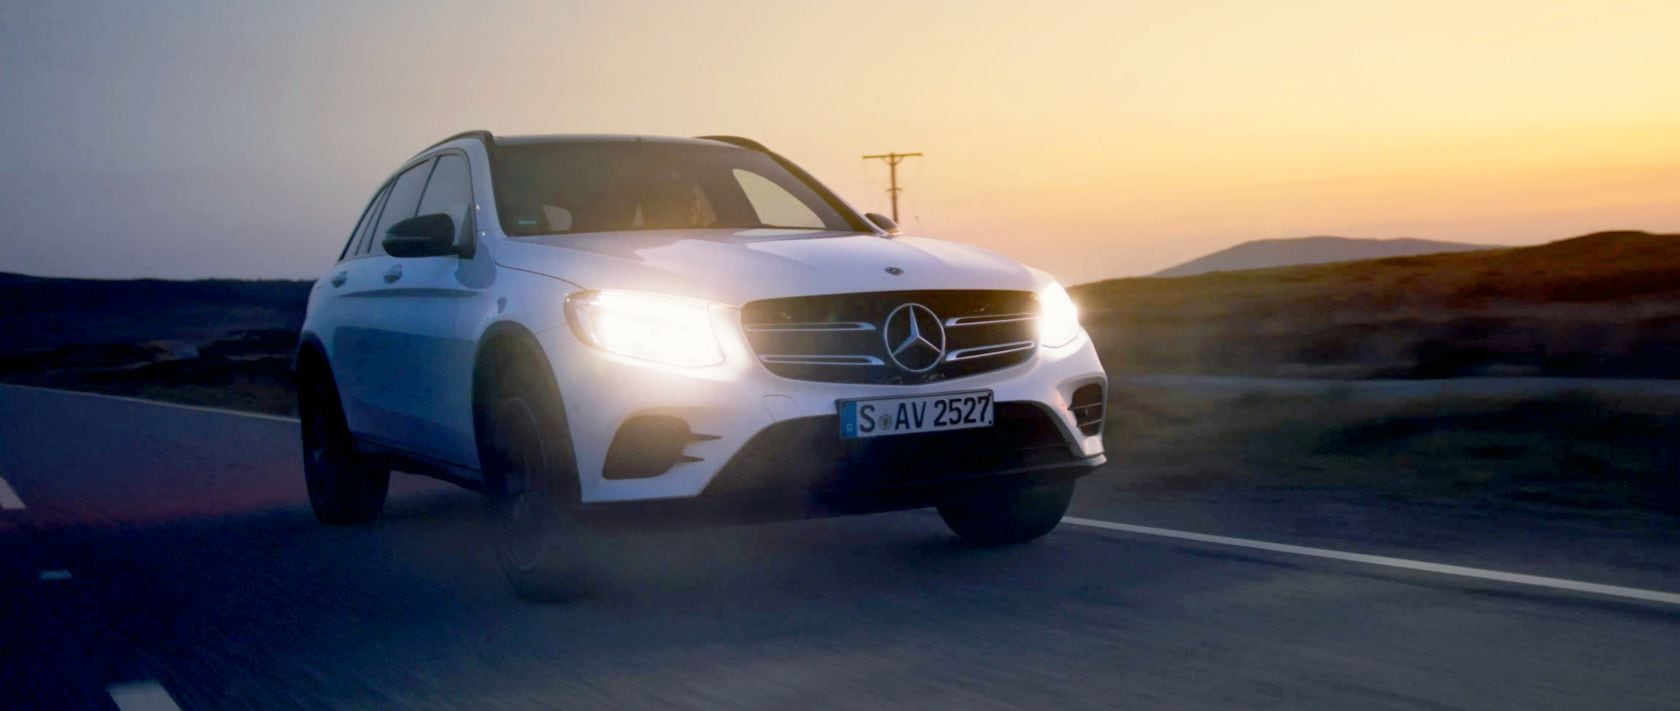 Mercedes-Benz – #MBvideocar: Der Mercedes-Benz GLC 250 d 4MATIC (X 253) in Schottland.